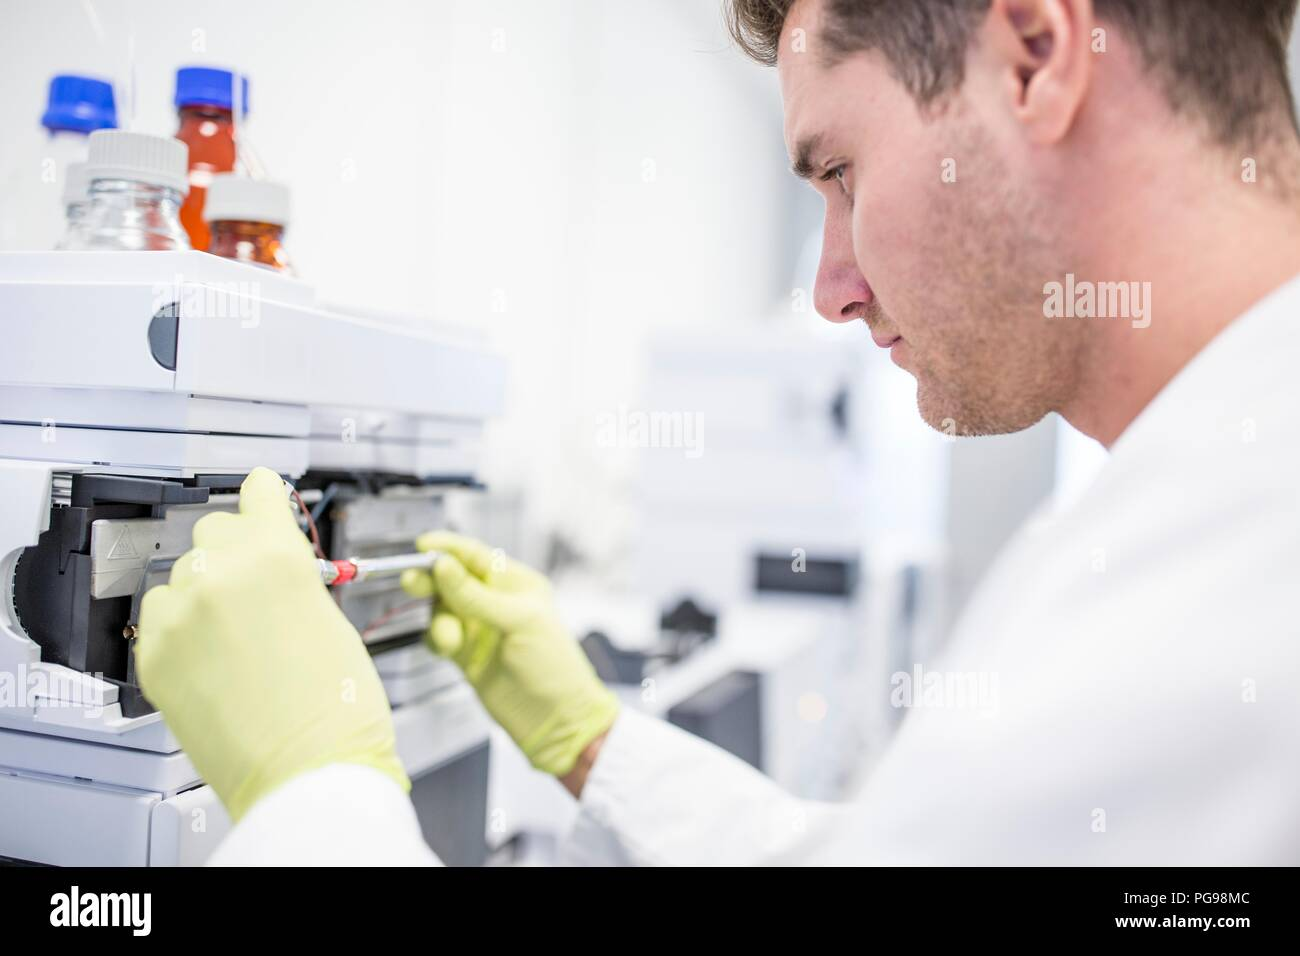 Technician placing a glass column containing a calibration solution in to a mass spectrometer. Mass spectrometry uses strong magnetic and electric fields to separate the components of a sample by mass and charge. This enables researchers to determine the elemental composition of the sample. - Stock Image